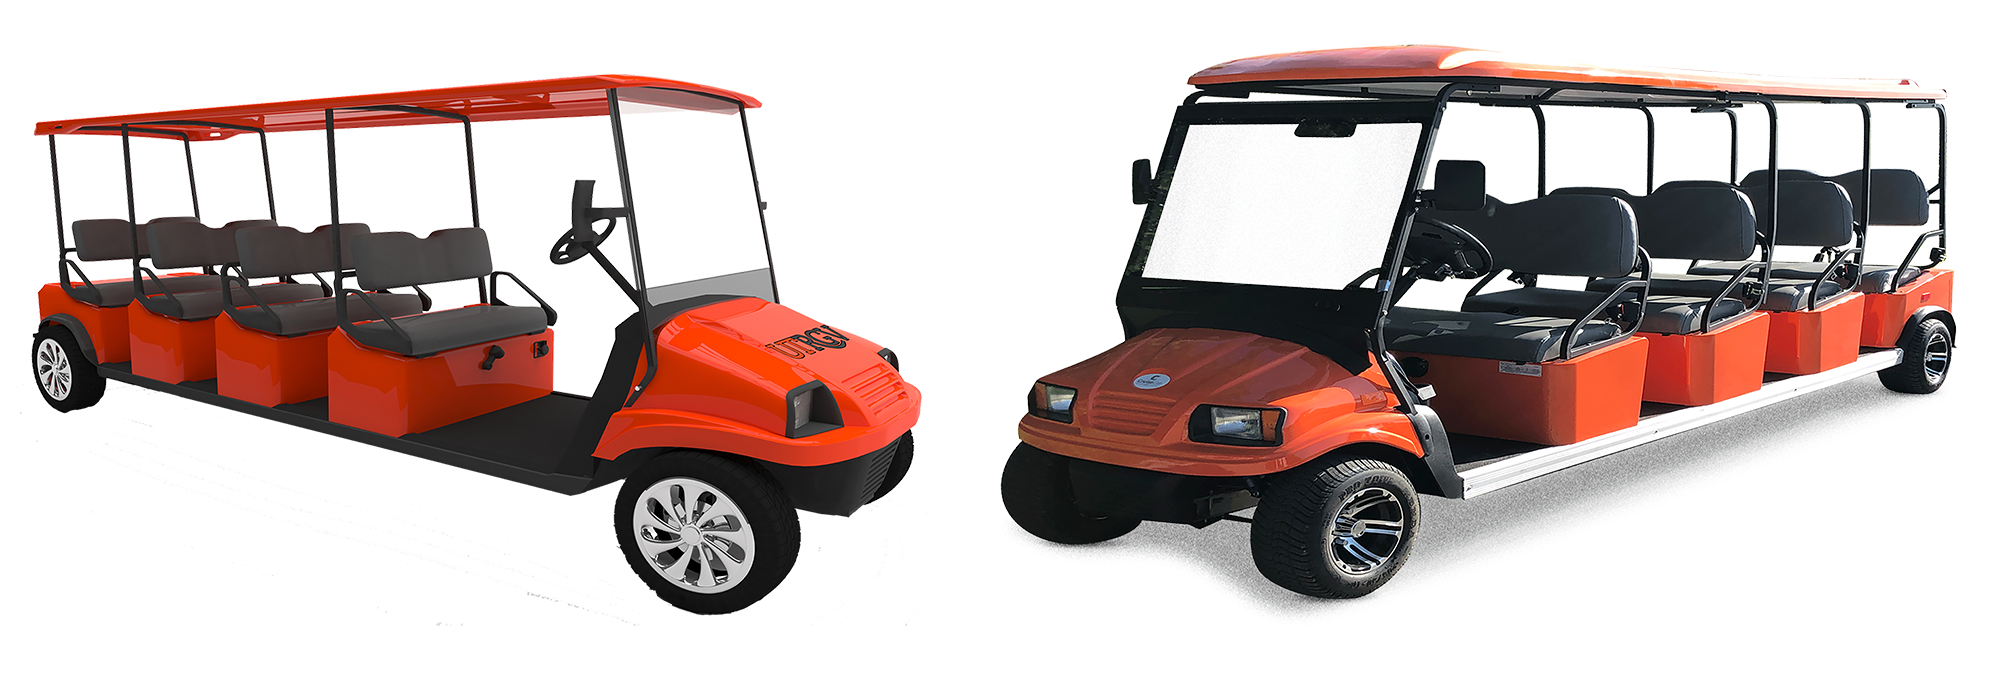 Digital Rendering Design for Texas Shuttle System (Left) - Vehicle Built by Cruise Car (Right)